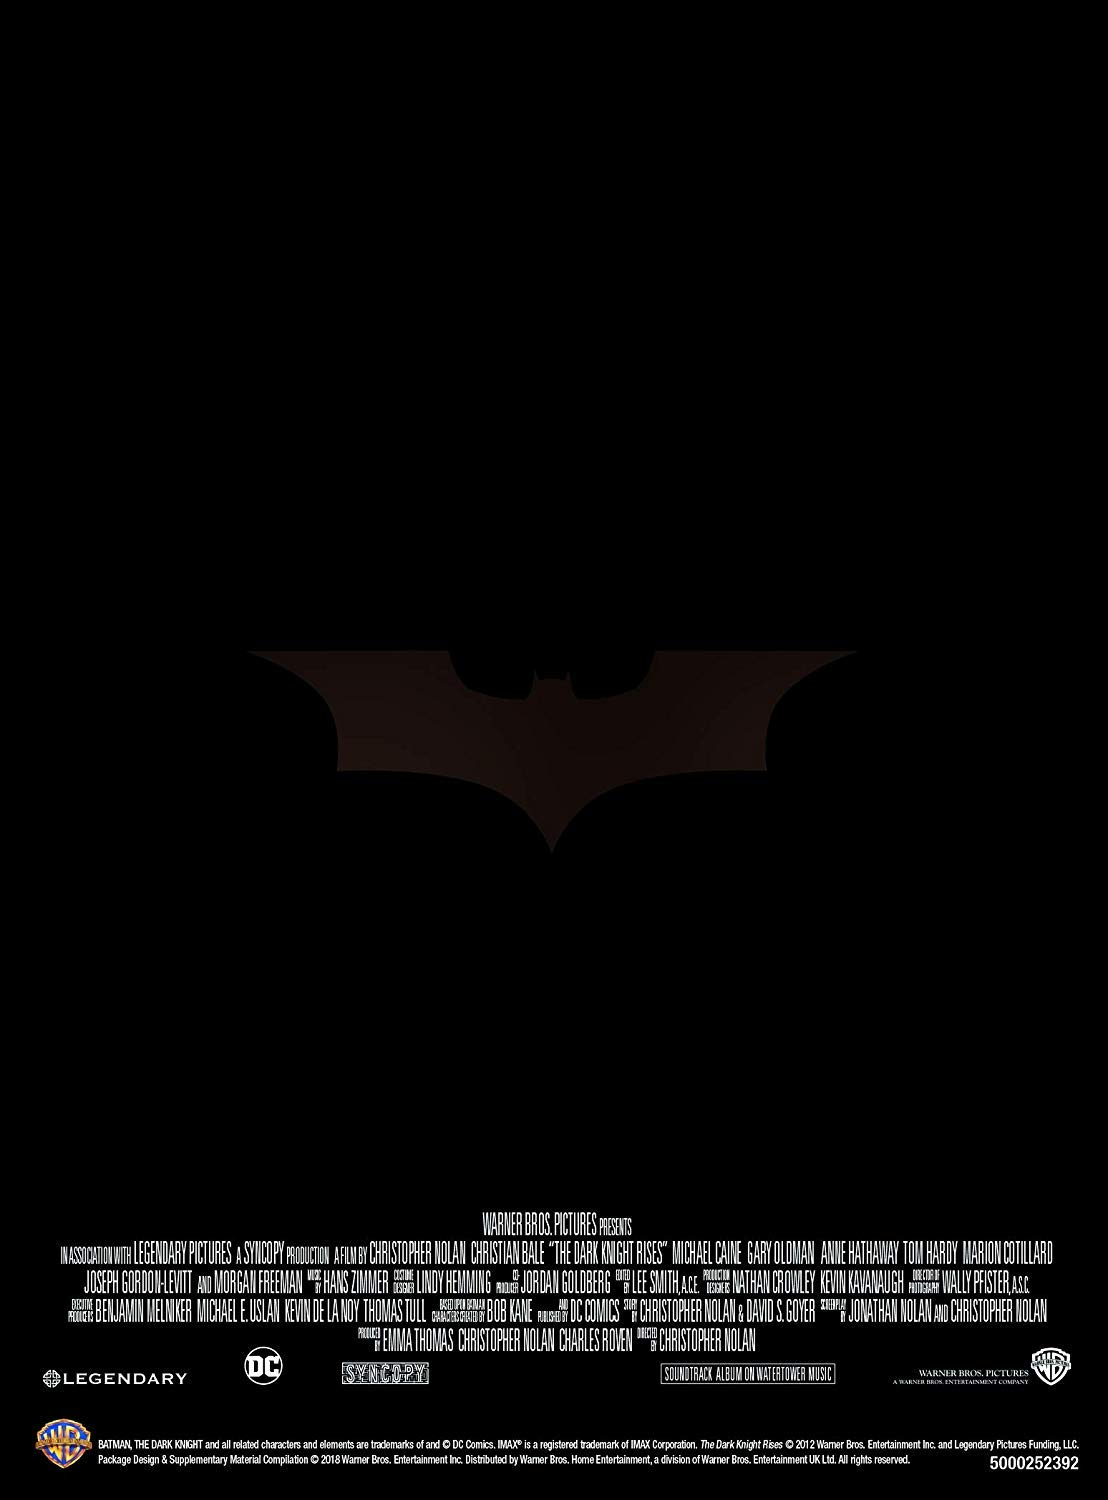 the dark knight rises (2012) full movie hindi dubbed brrip